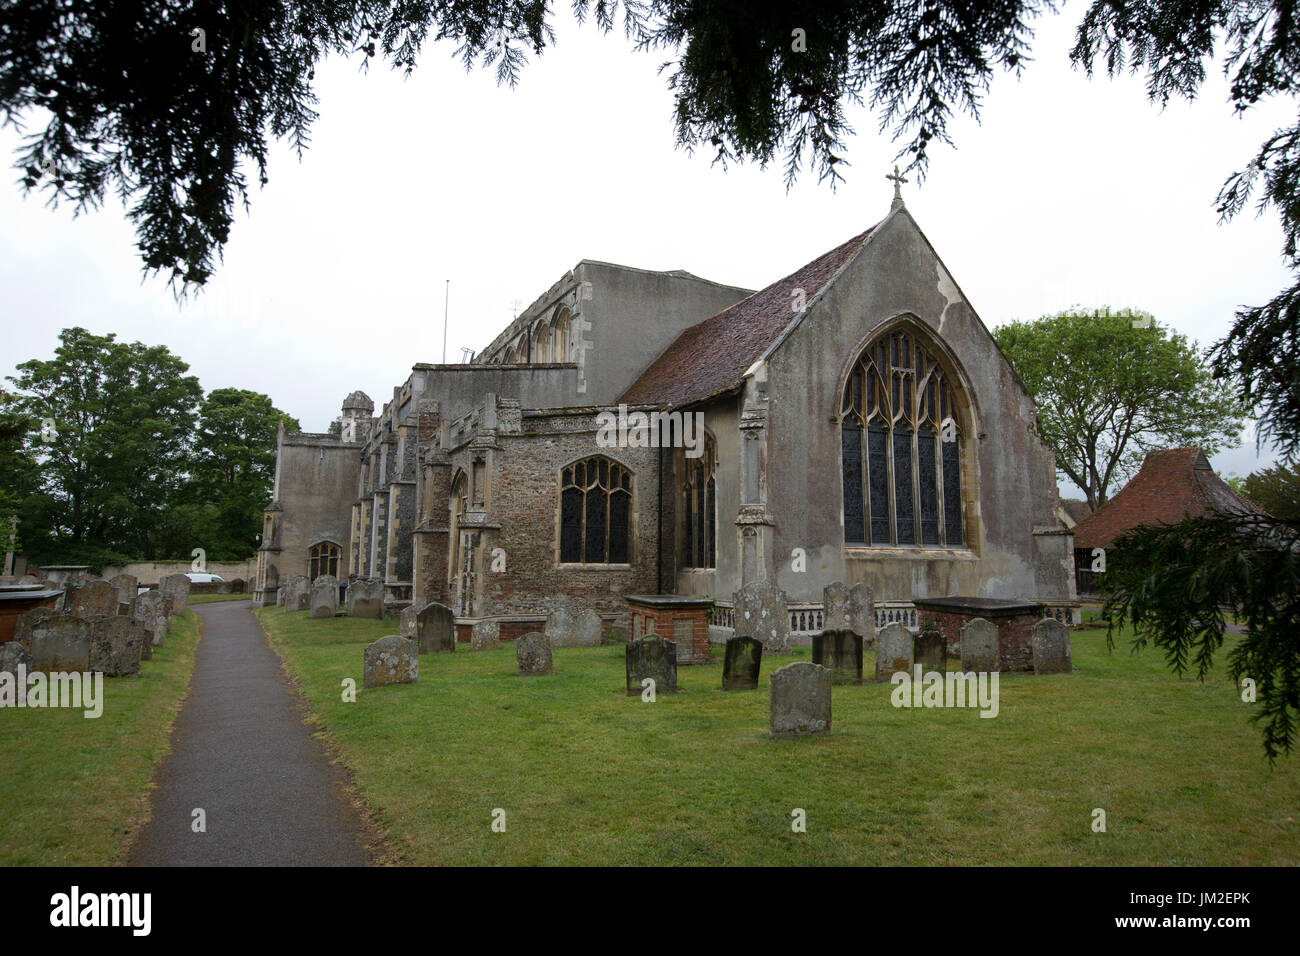 East Bergholt village, Suffolk, birthplace of painter John Constable, Babergh district, Stour Valley, Suffolk, England, United Kingdom - Stock Image